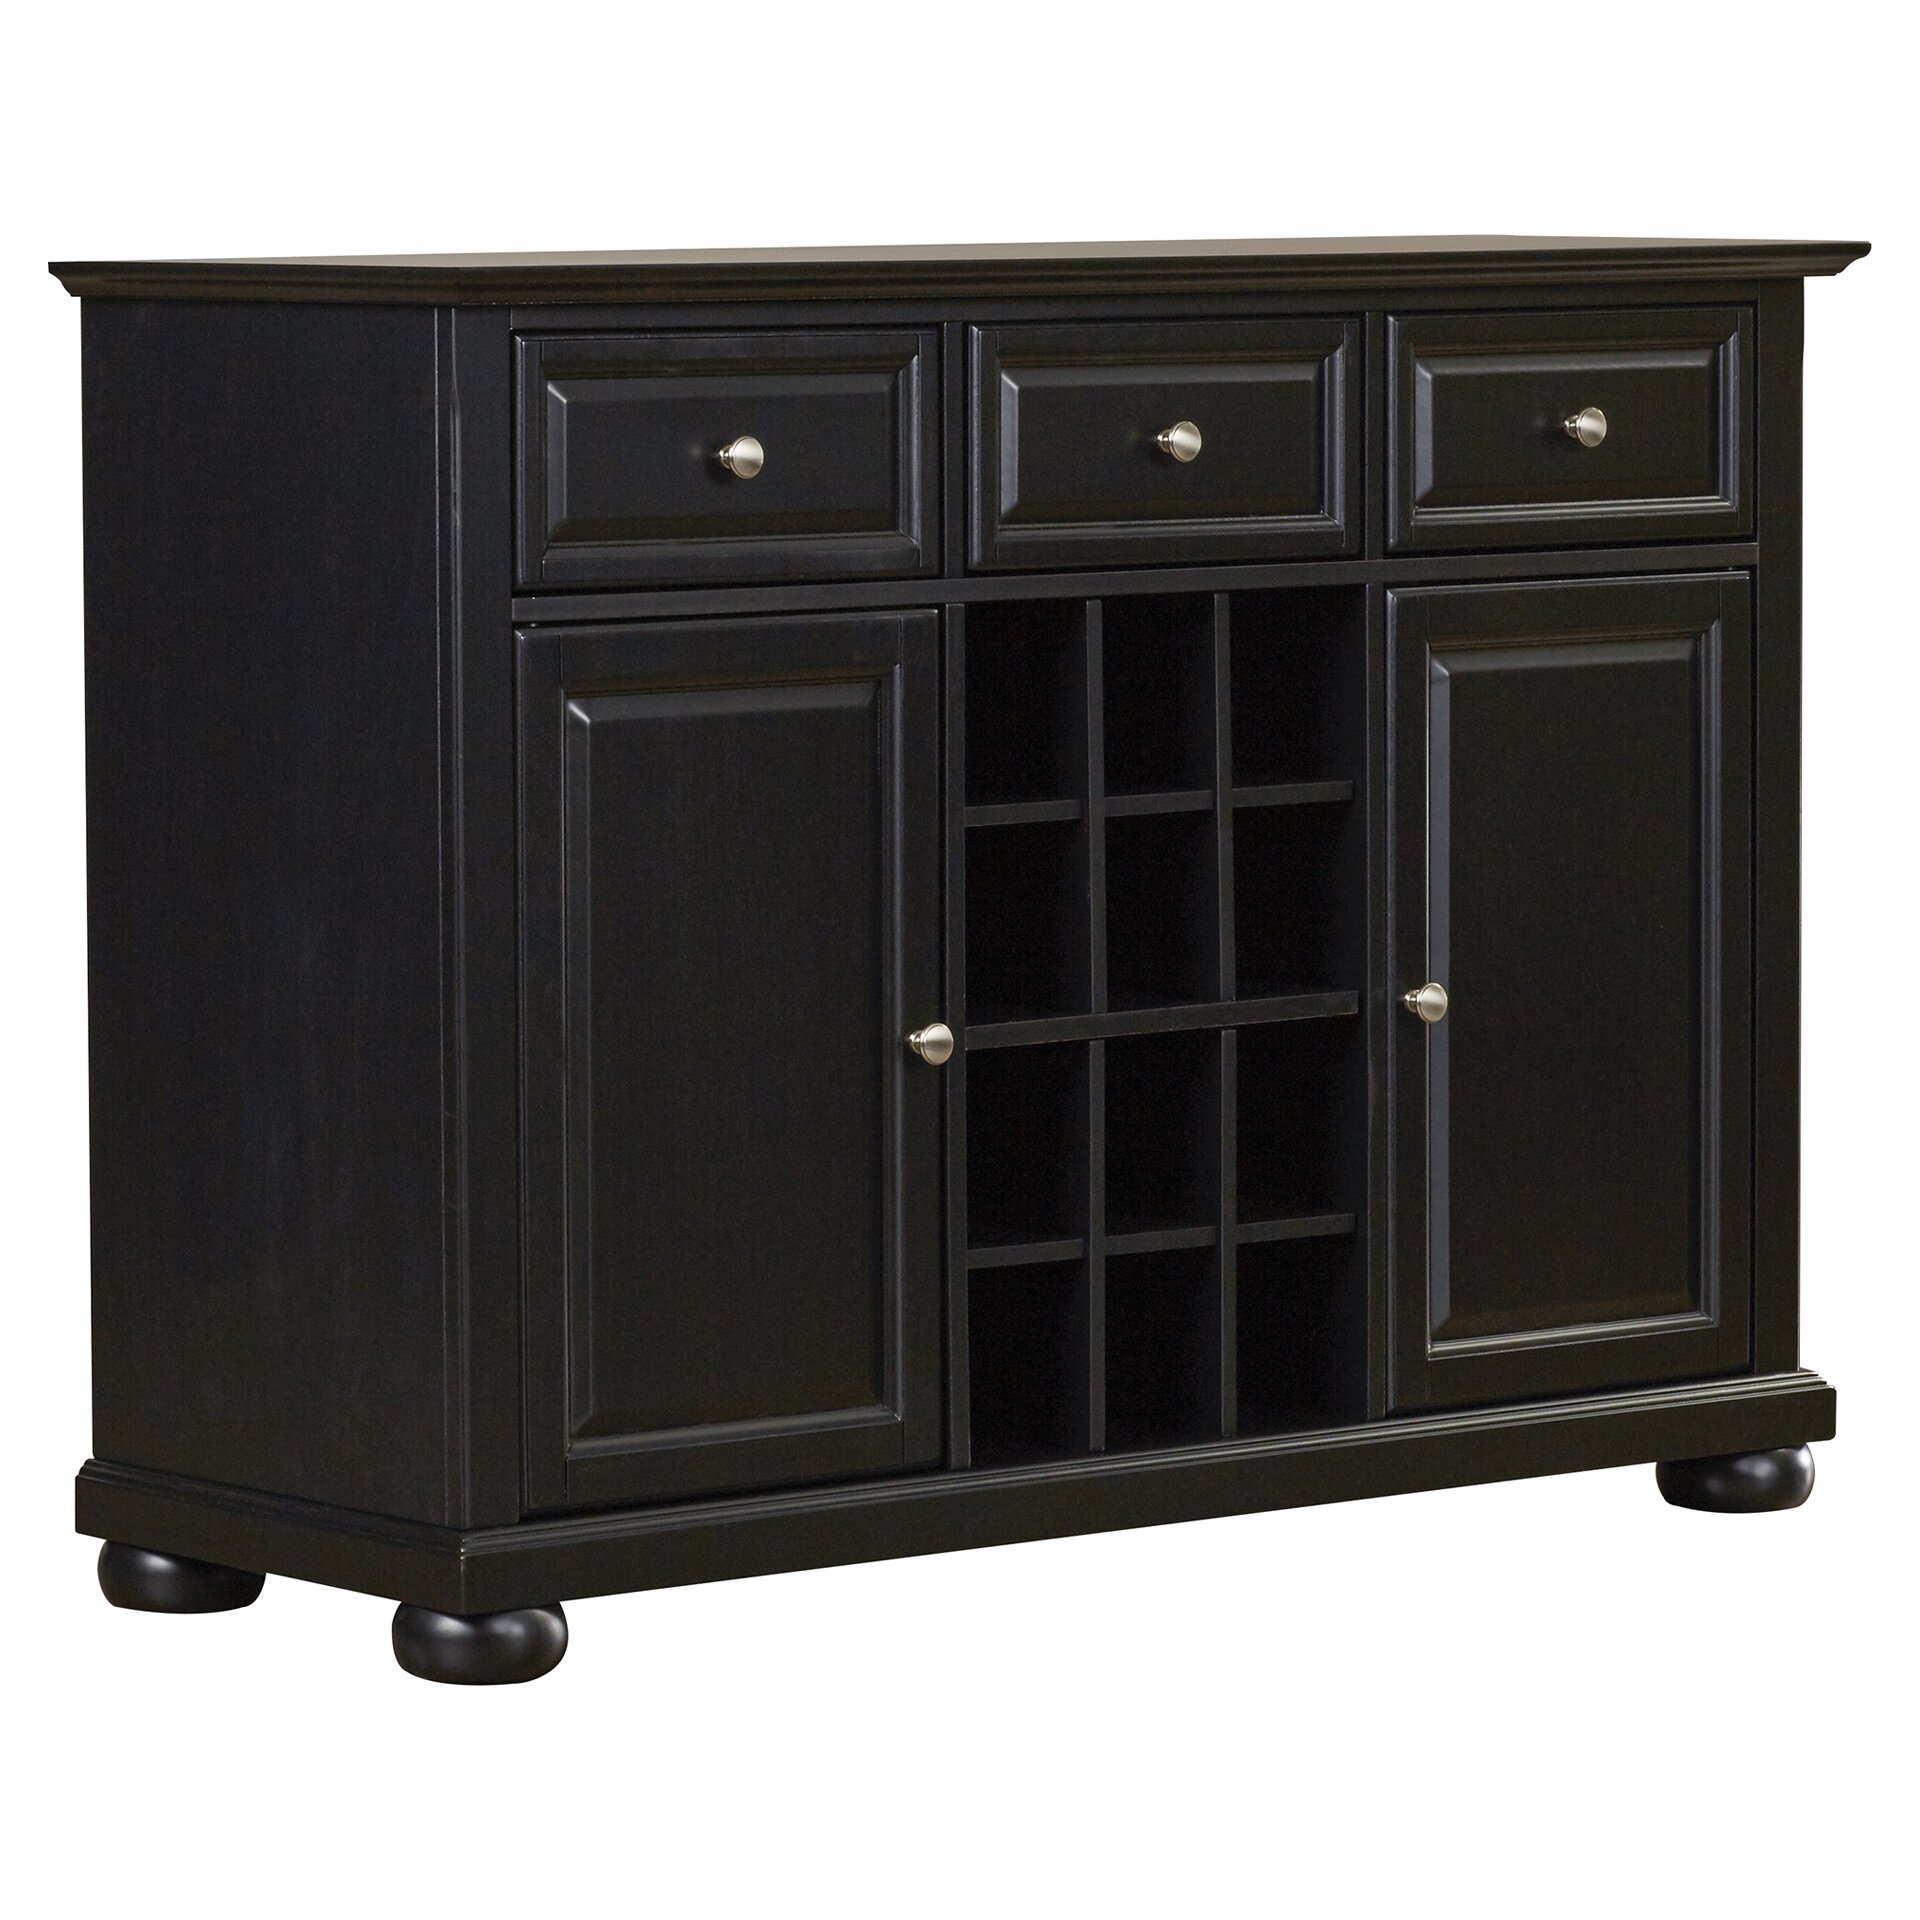 Darby Home Co Pottstown Buffet Server / Sideboard Cabinet with Wine Storage & Reviews | Wayfair